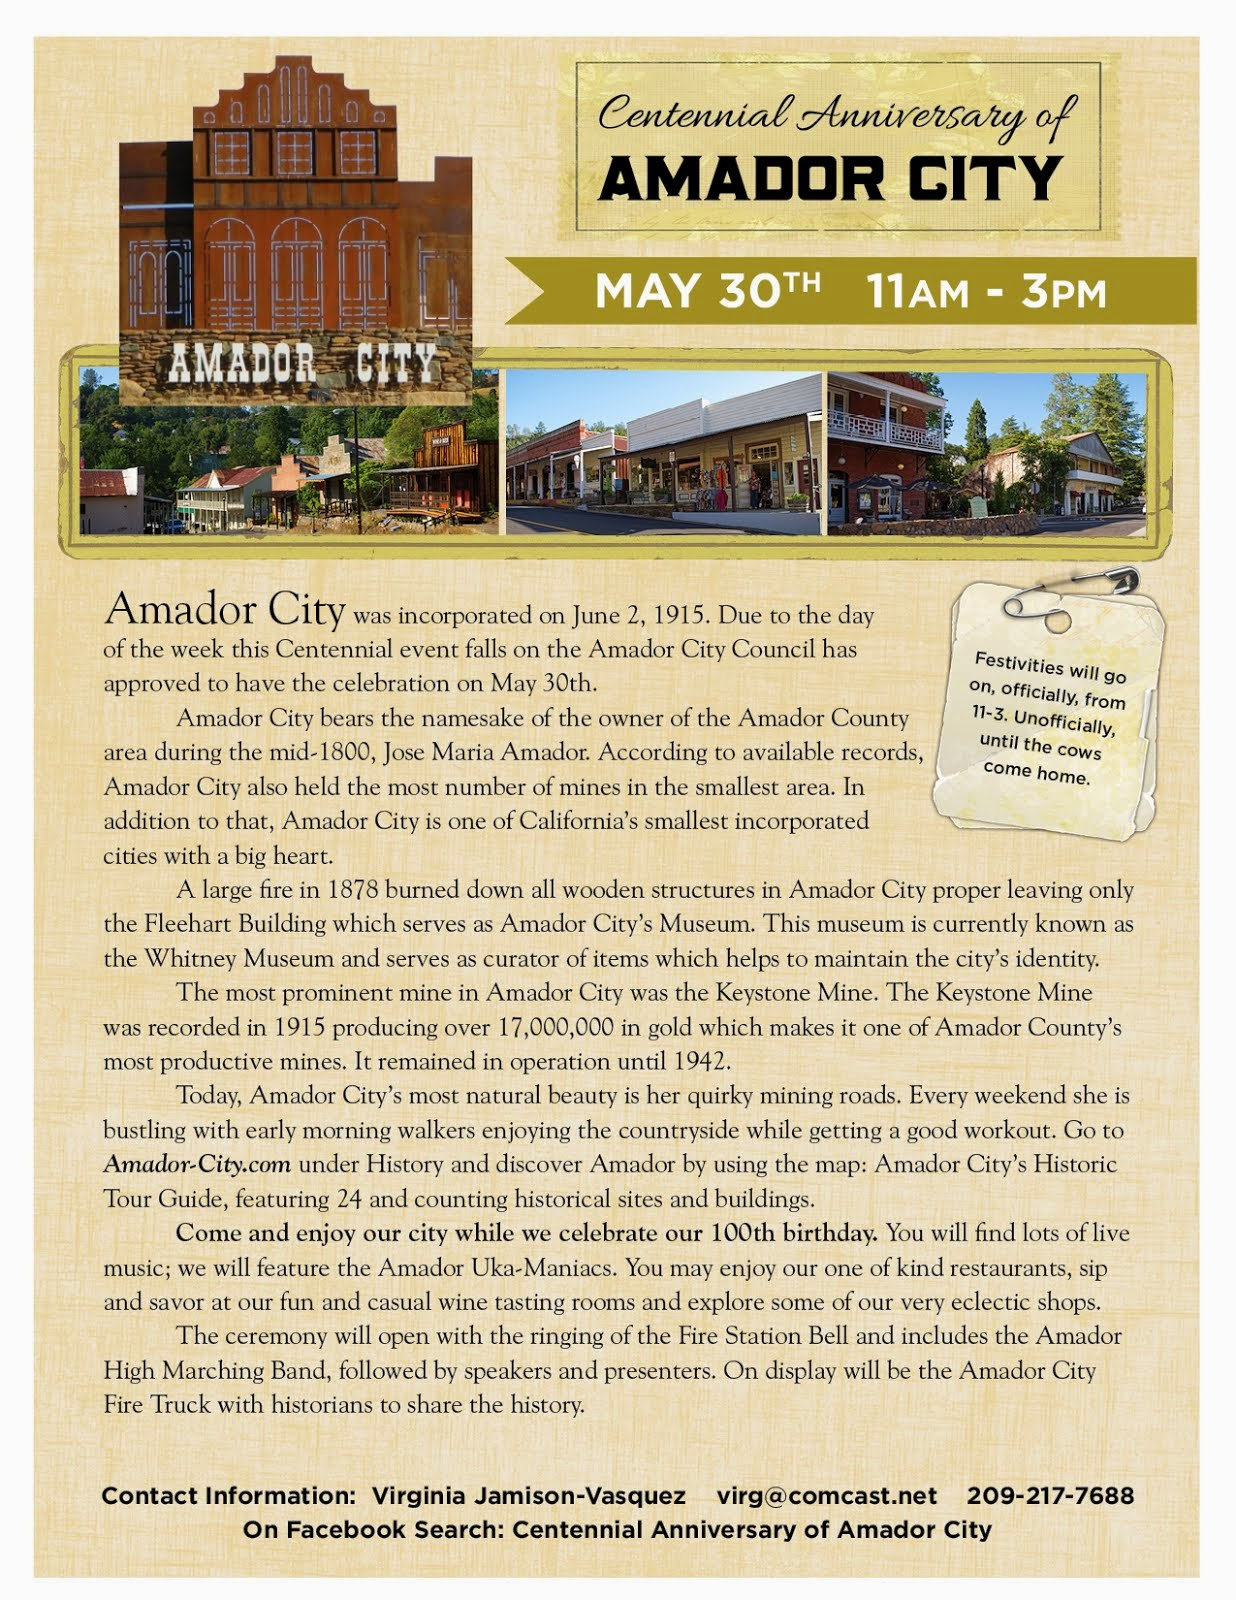 Centennial Anniversary of Amador City - Sat May 30